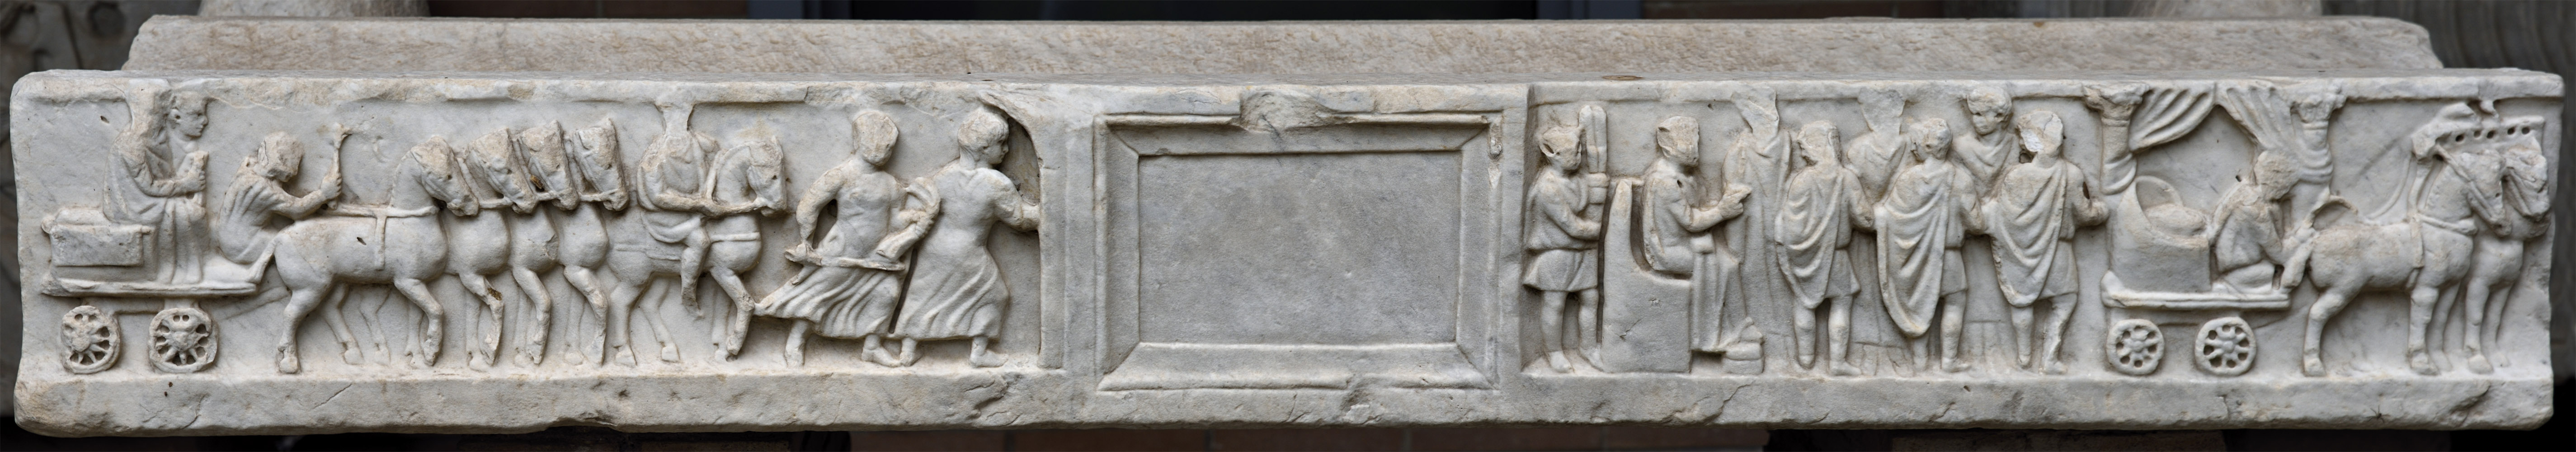 Sarcophagus with scenes of a jorney of the shadows of the married couple to the Underworld. Marble. 2nd—3rd cent. CE. Ostia, Archaeological Museum